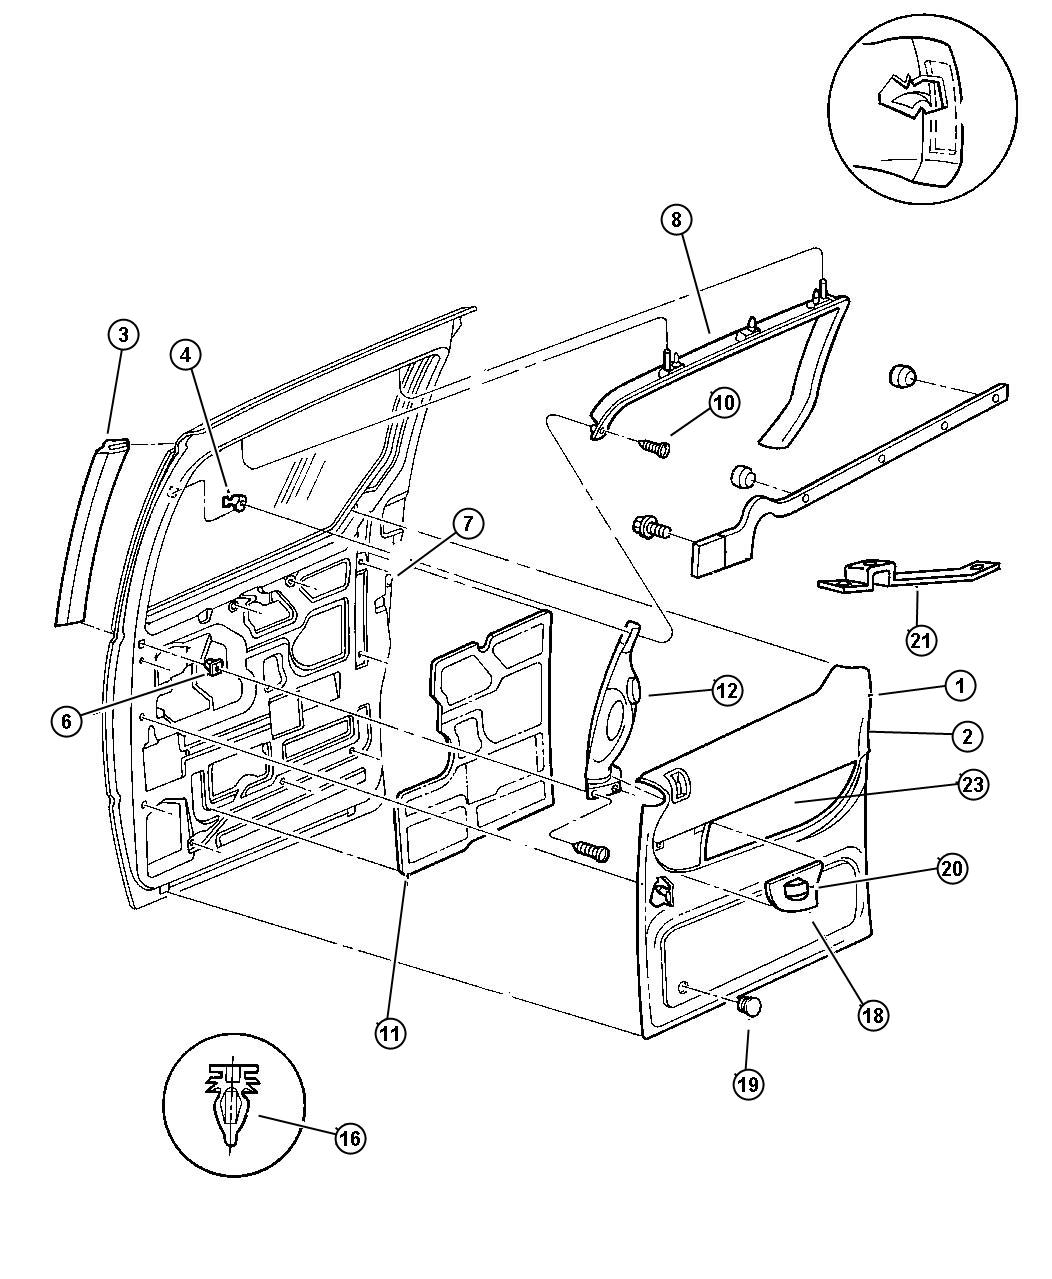 Service manual [Install Liftgate Handle 2000 Chrysler